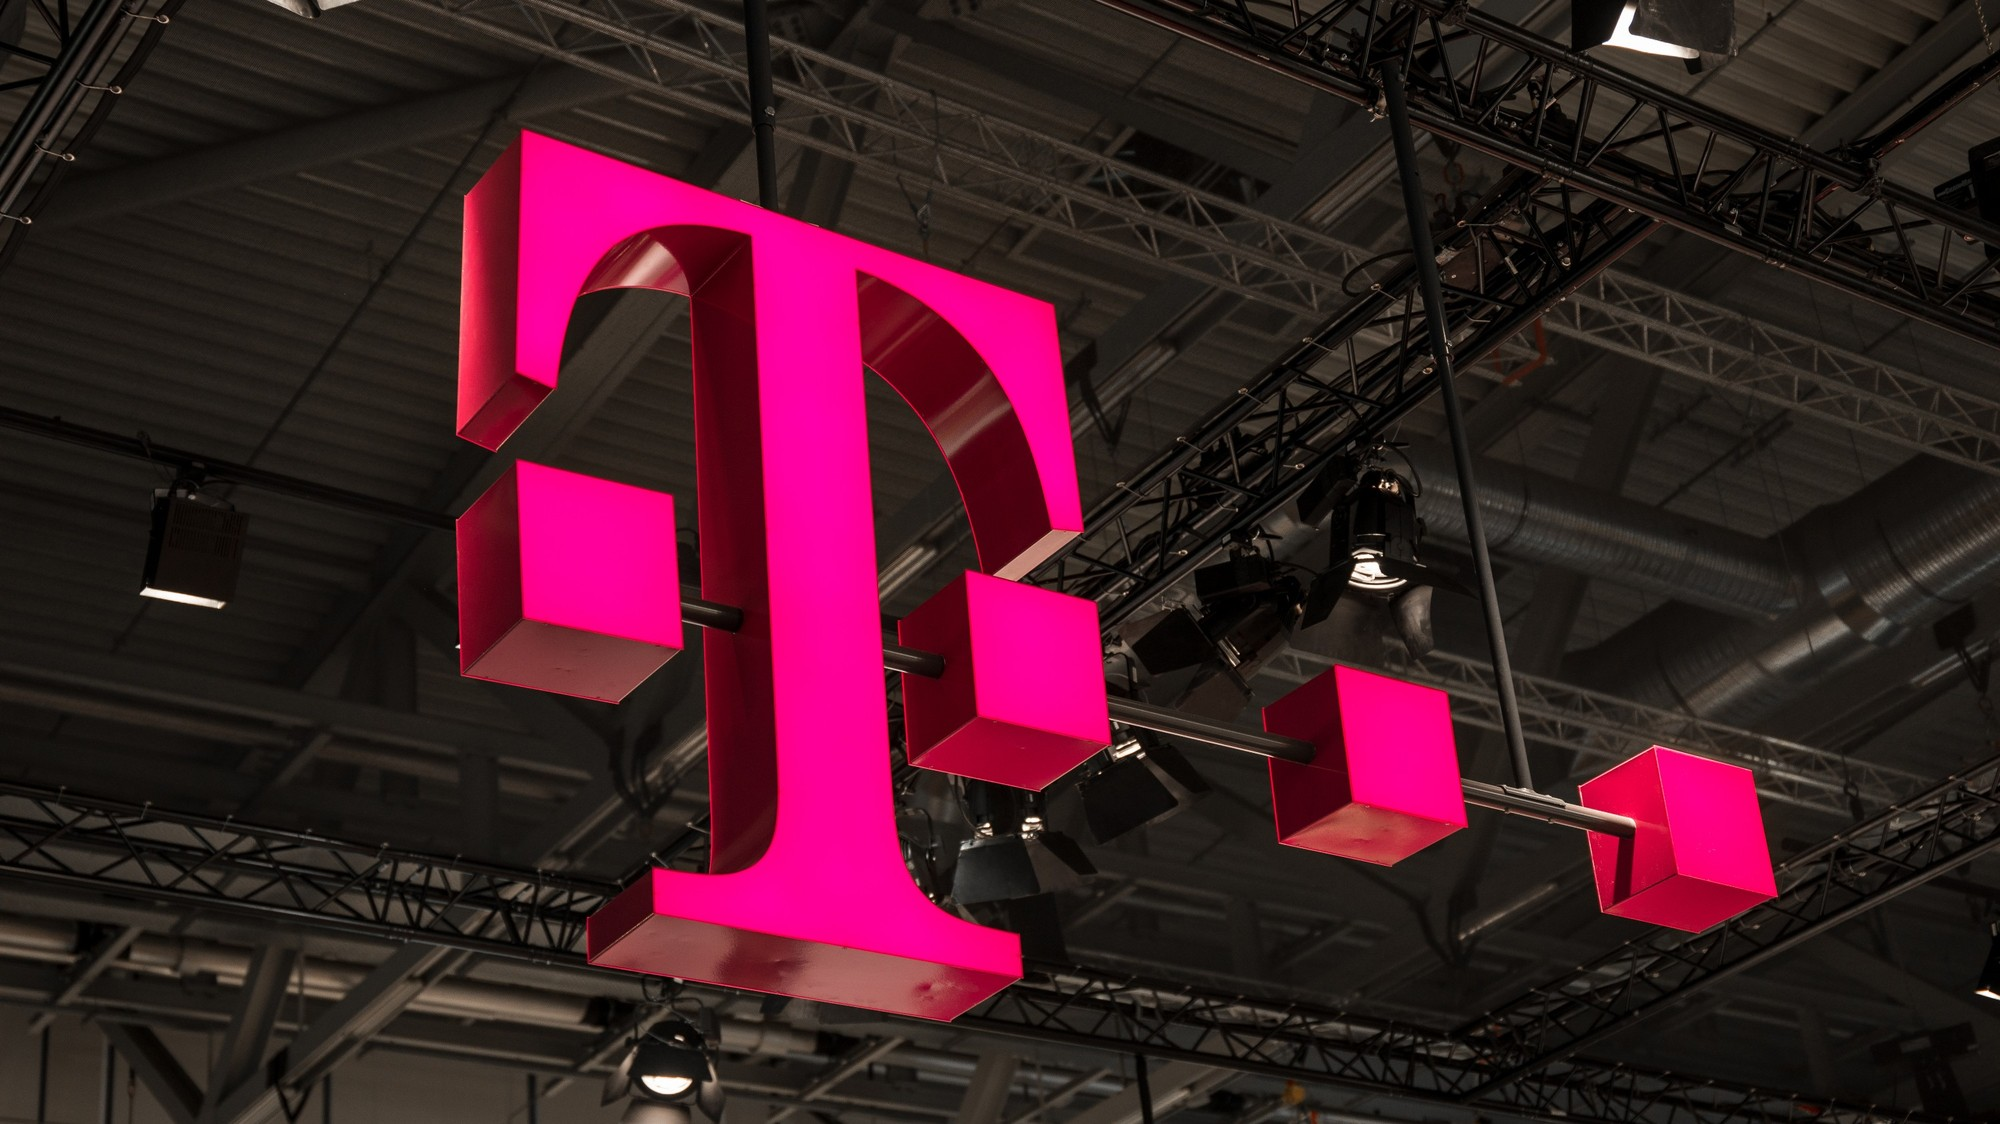 Hackers Stole Personal Data of 2 Million T-Mobile Customers